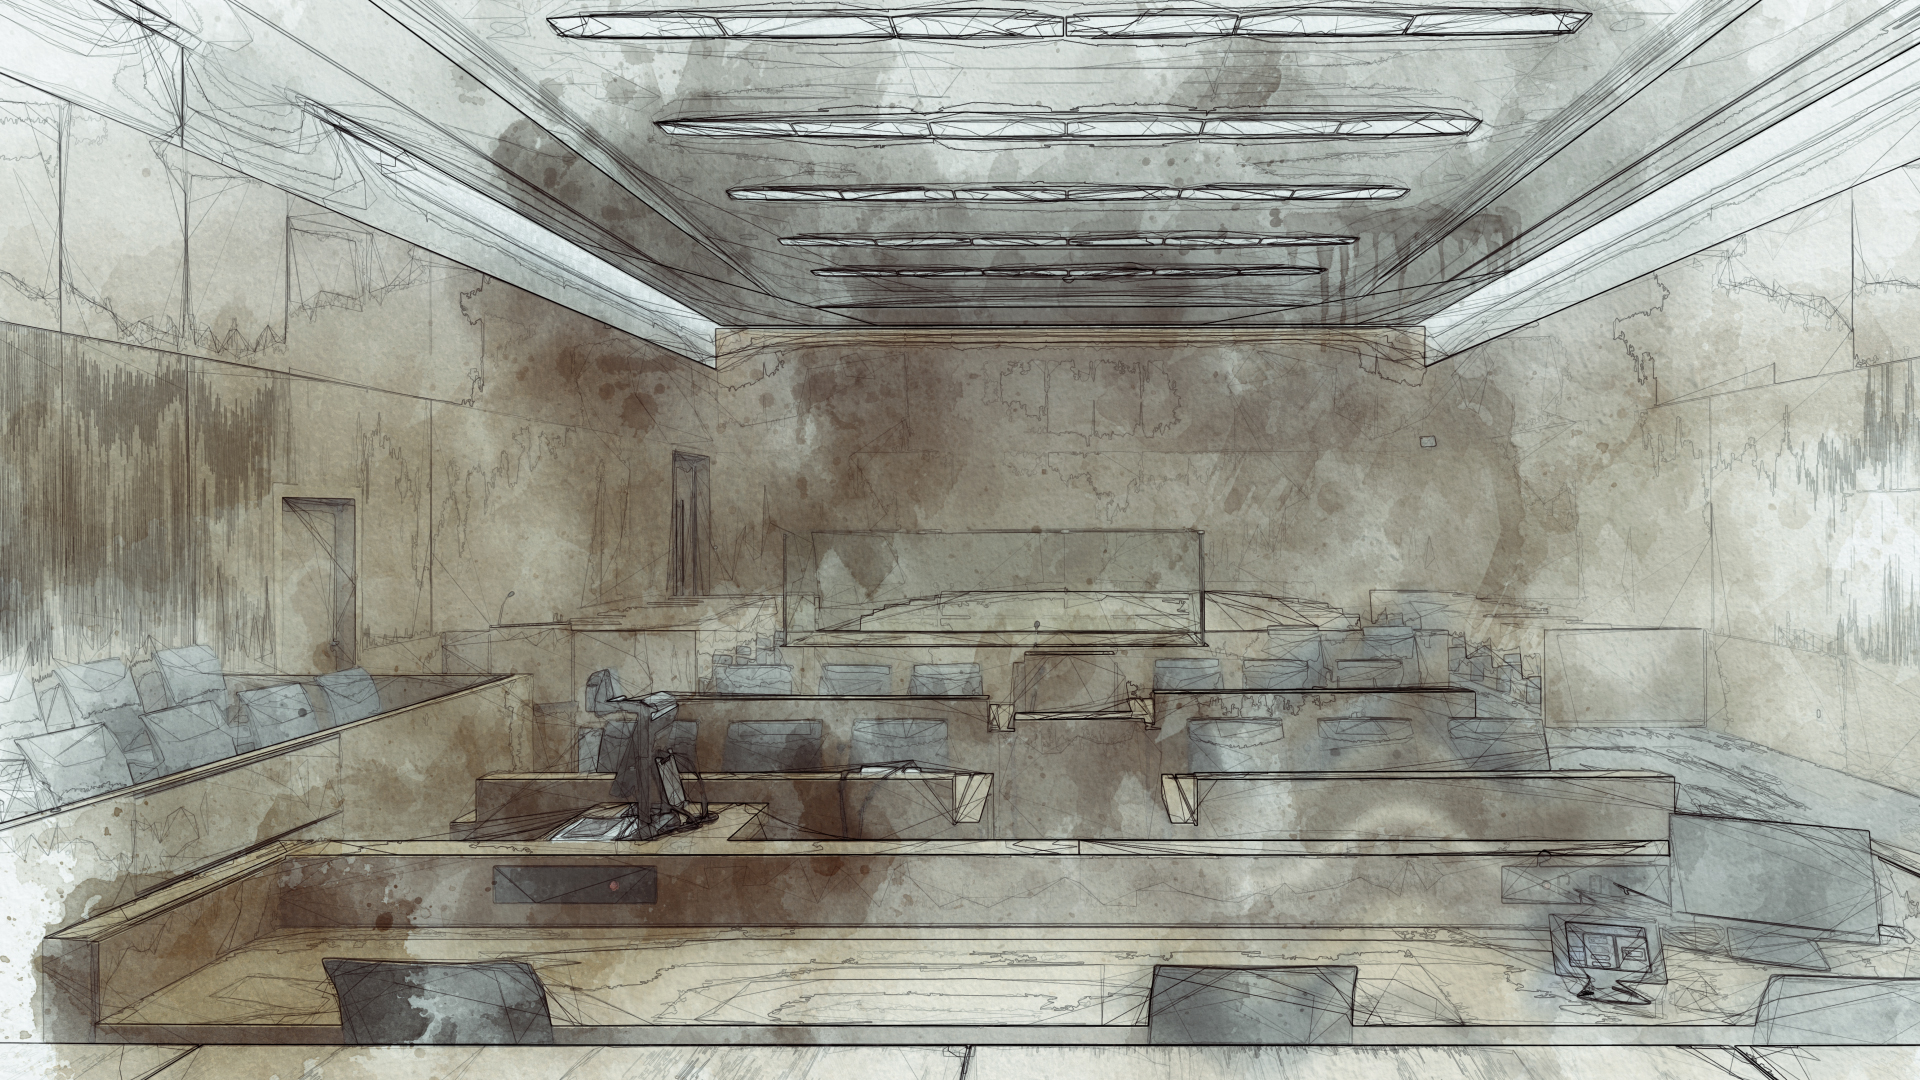 Generic watercolour image of a courtroom.